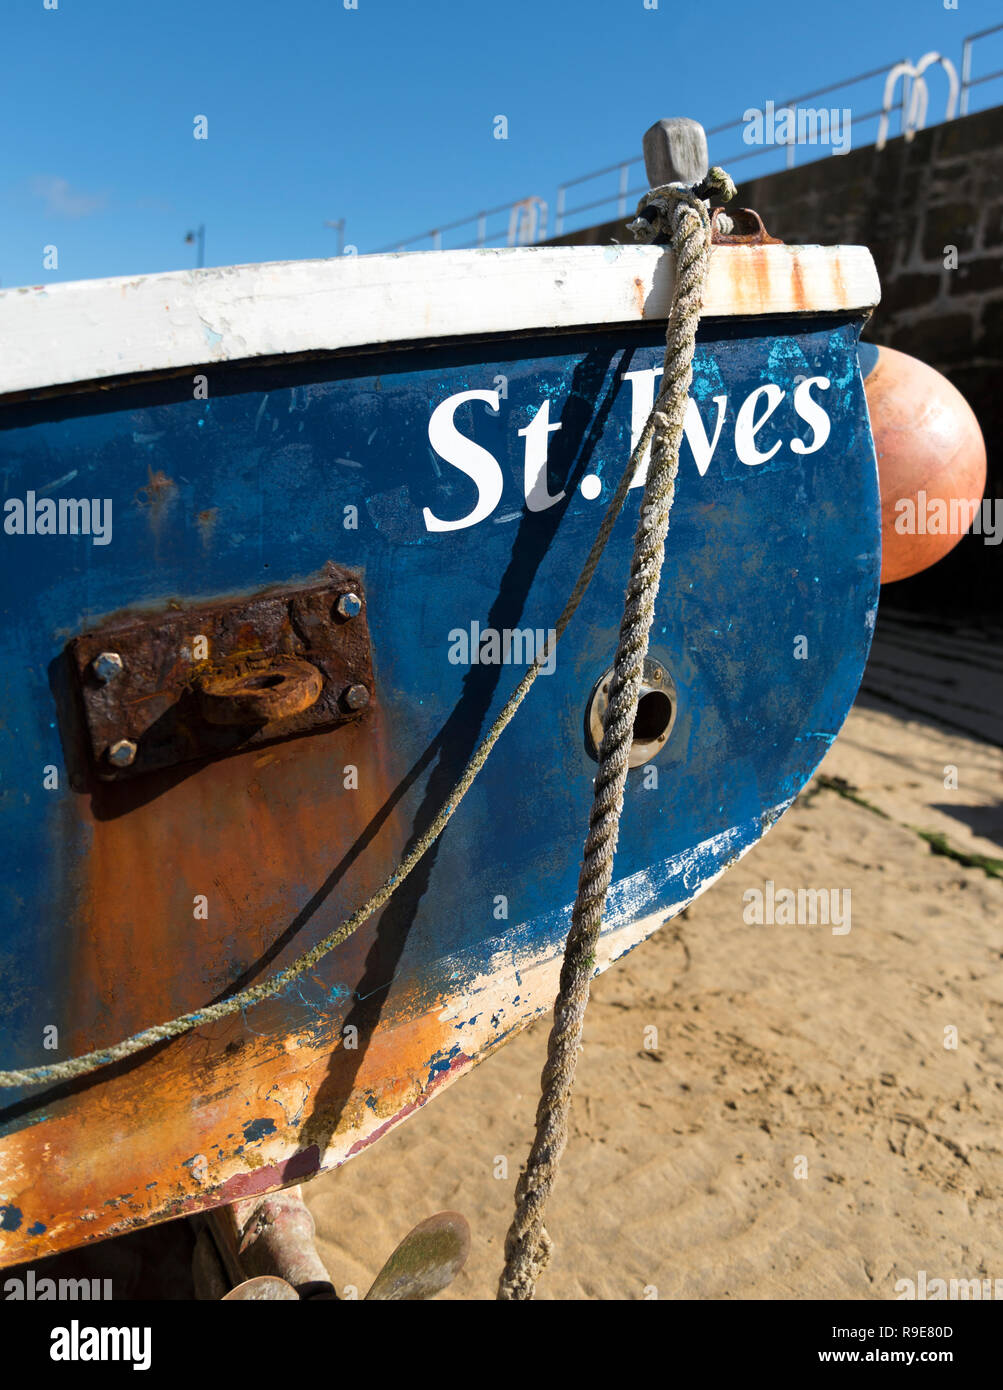 St.ives fishing boat in St.ives harbour on moorings in blue sky - Stock Image